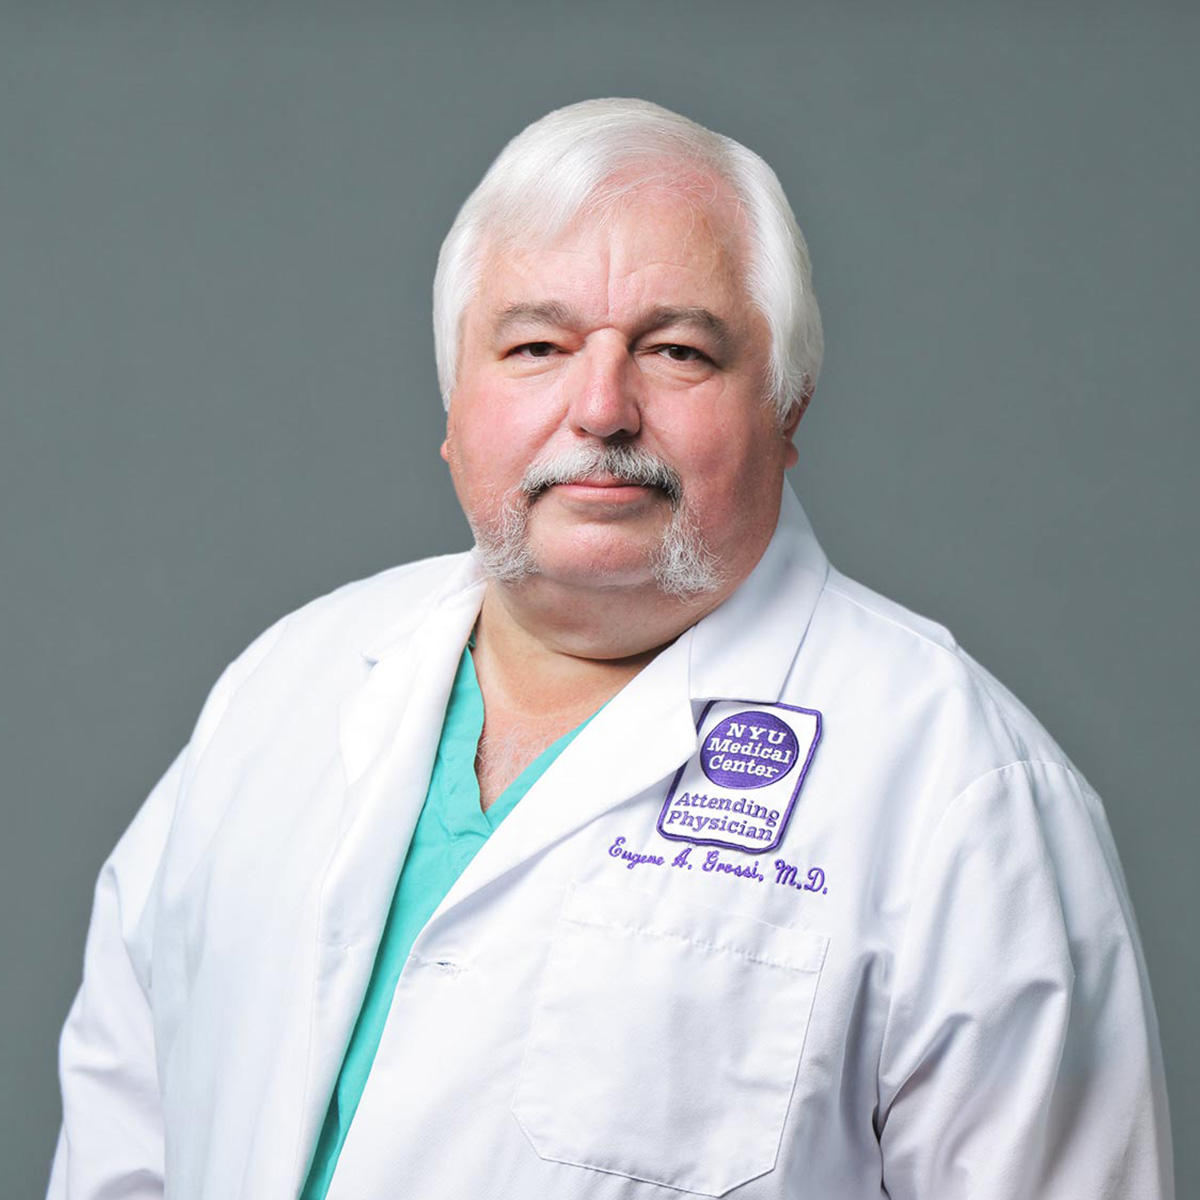 Eugene A. Grossi, MD